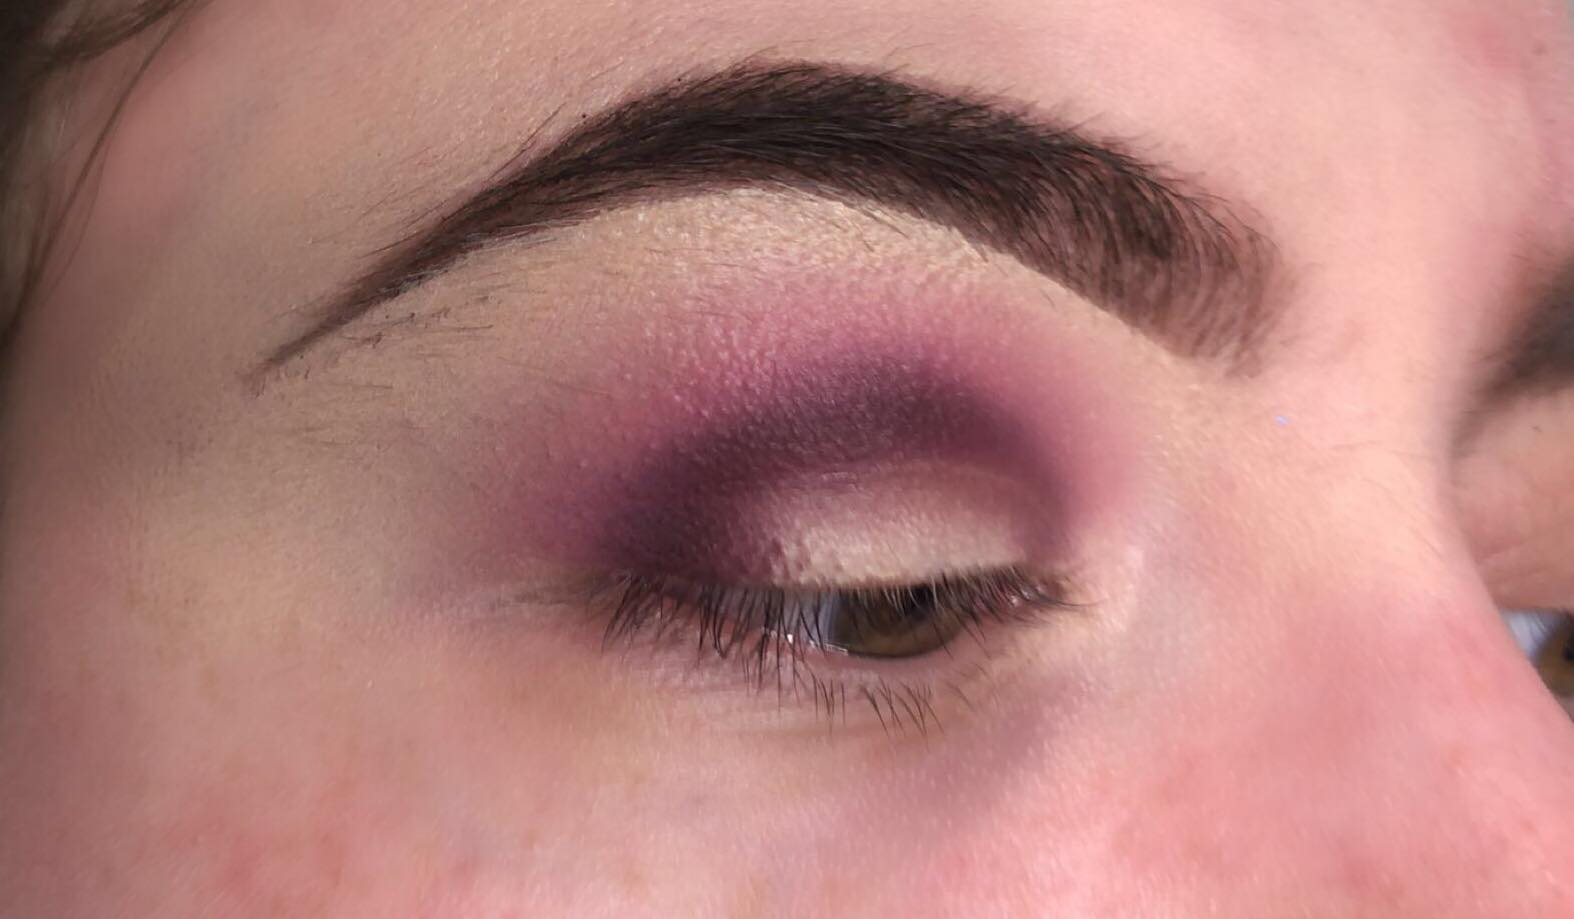 Sparkly Cut Crease Makeup Tutorial - Step 3 - Lightly Buff the Edges